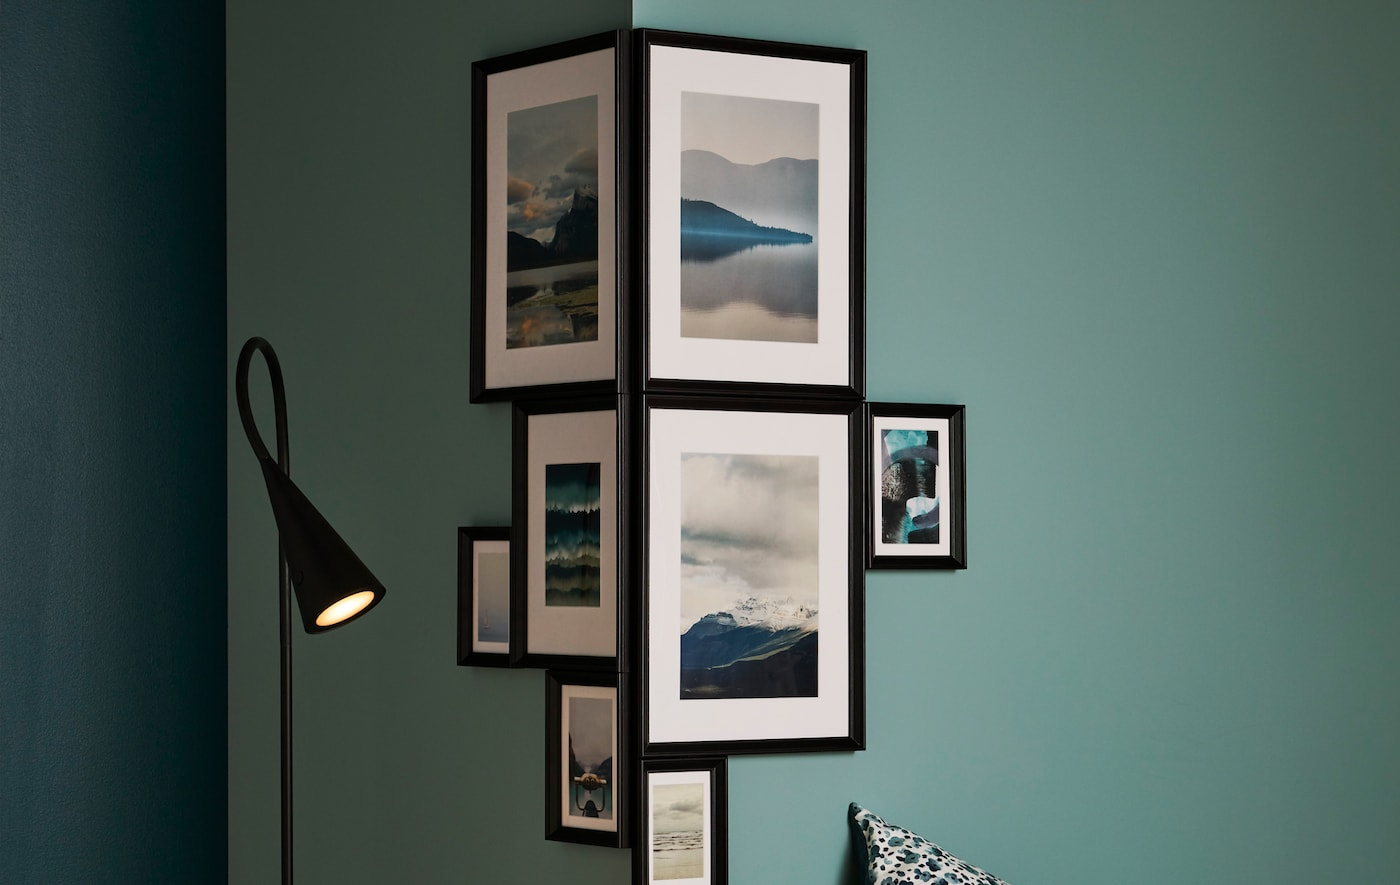 Different-size picture frames with themed motifs mounted closely around the corner of green room.